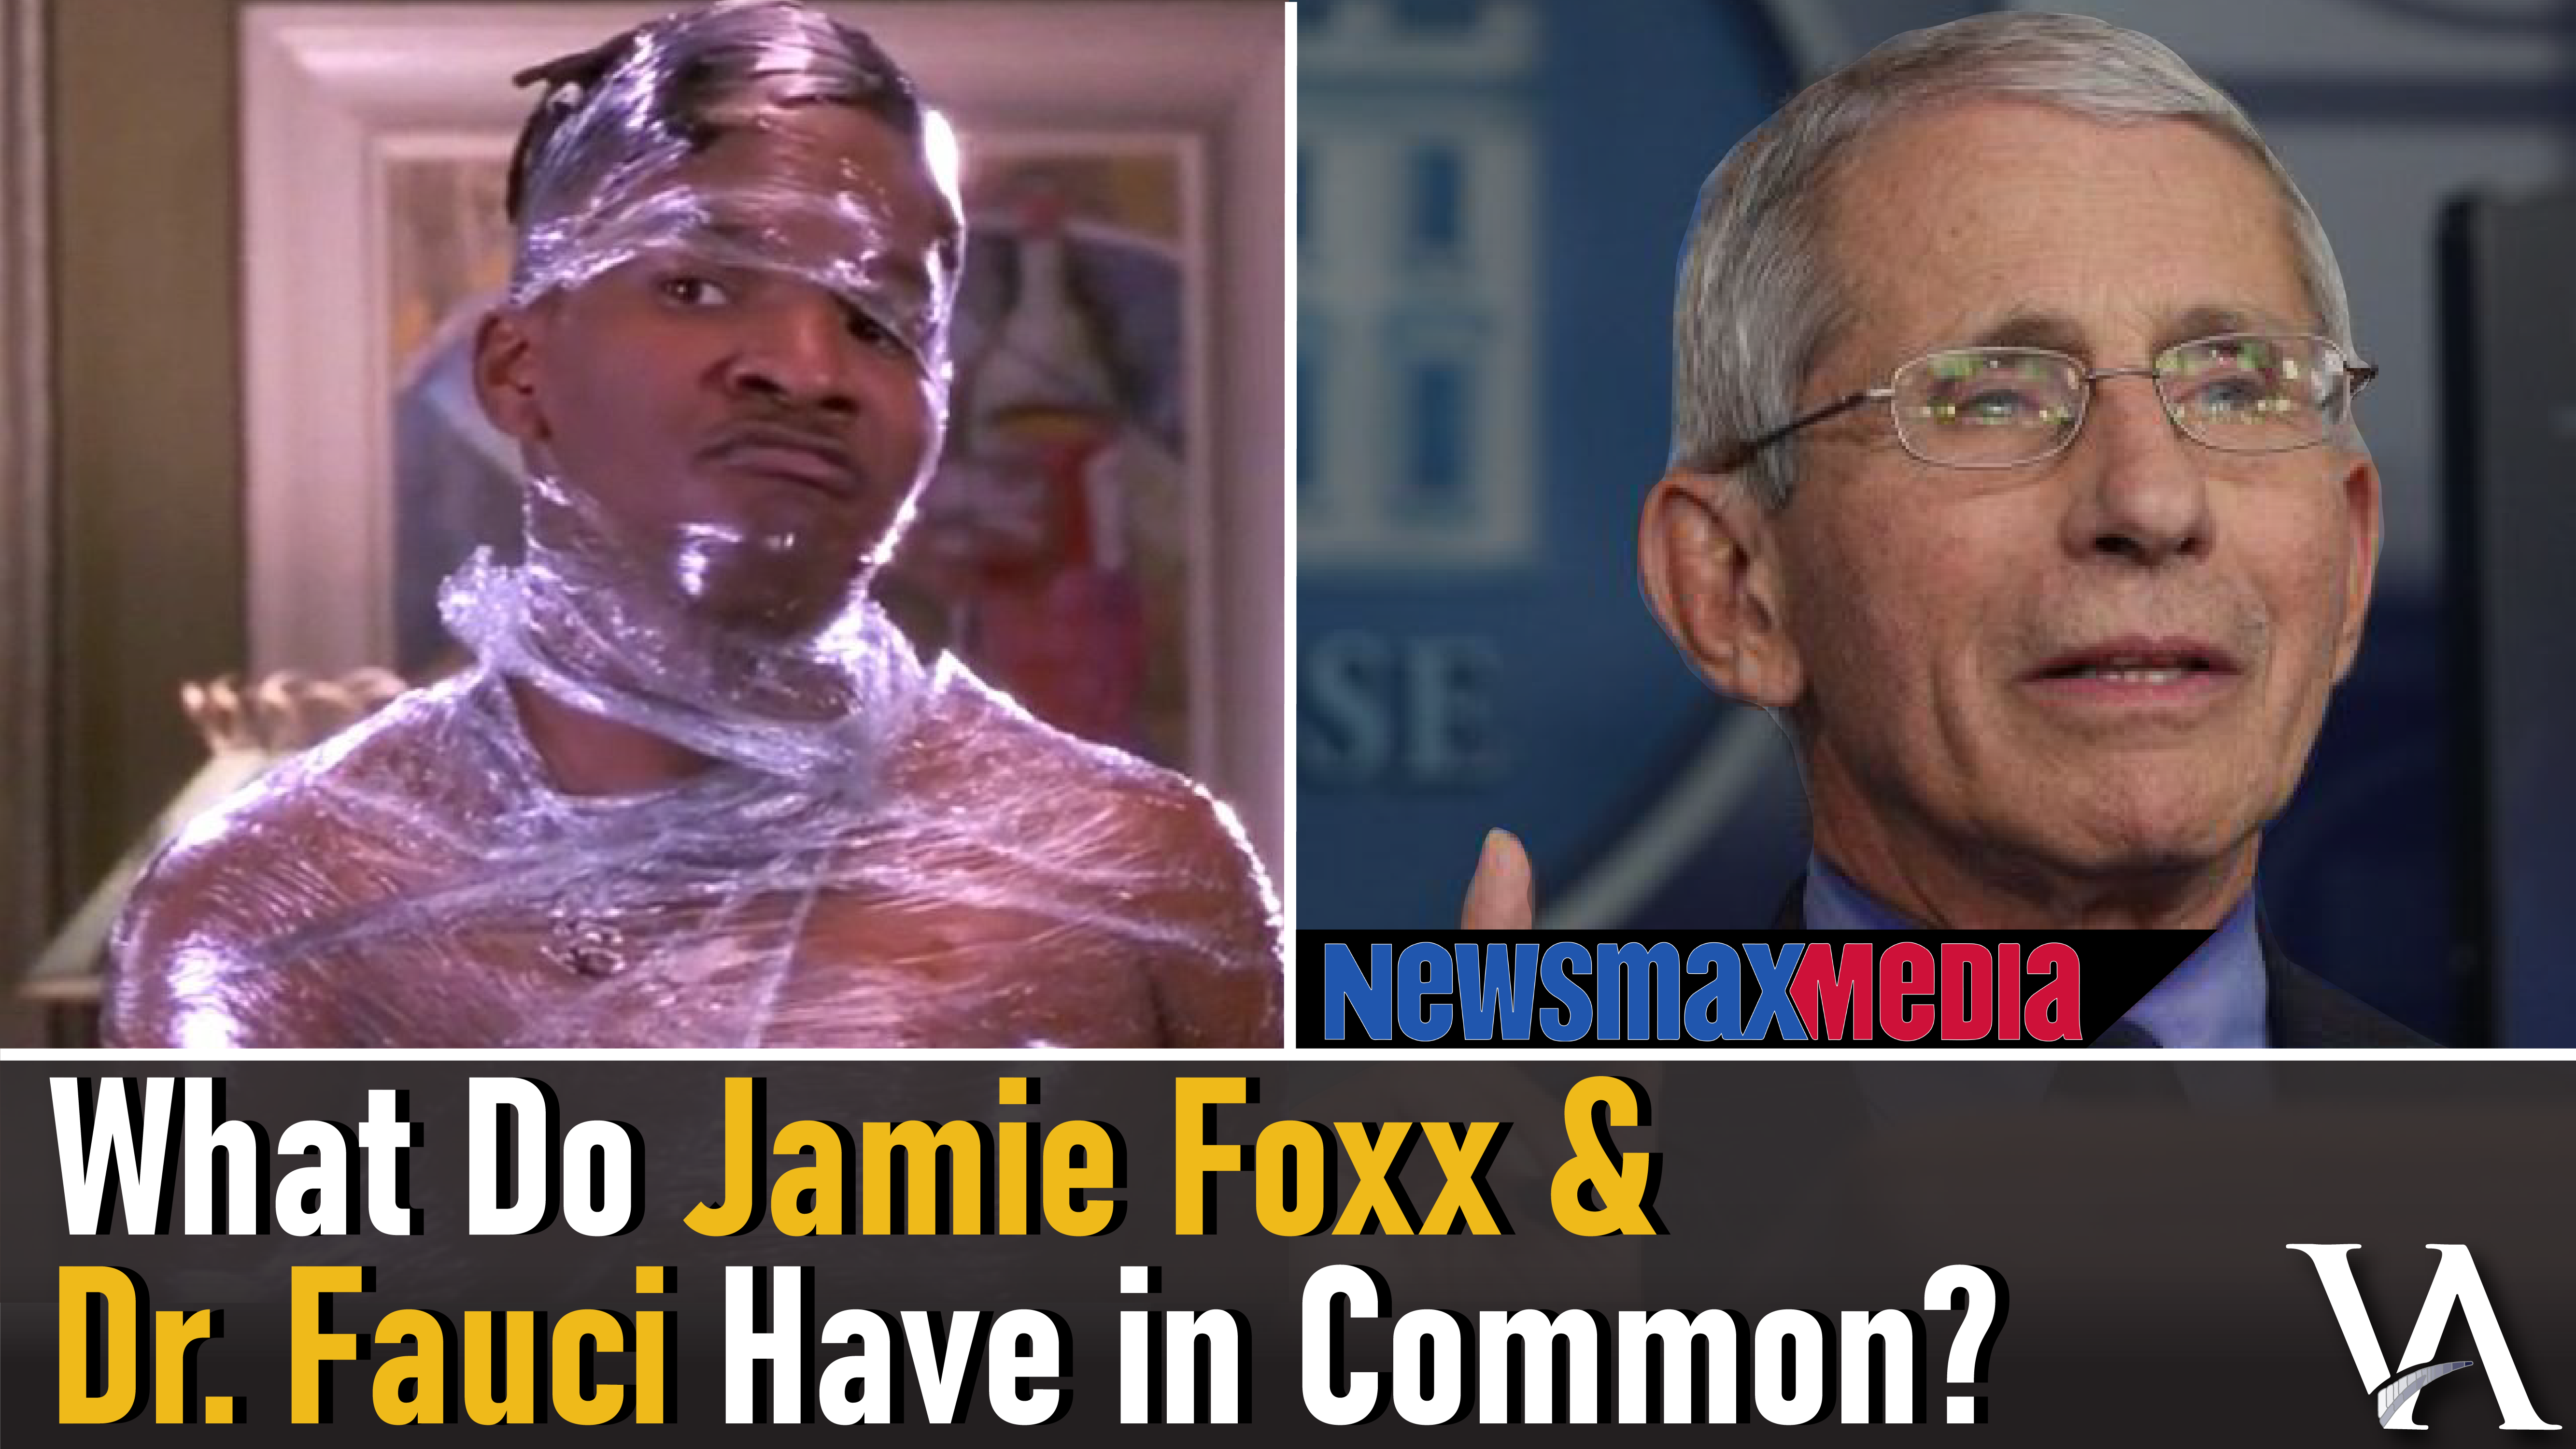 Dr Fauci and Jamie Foxx